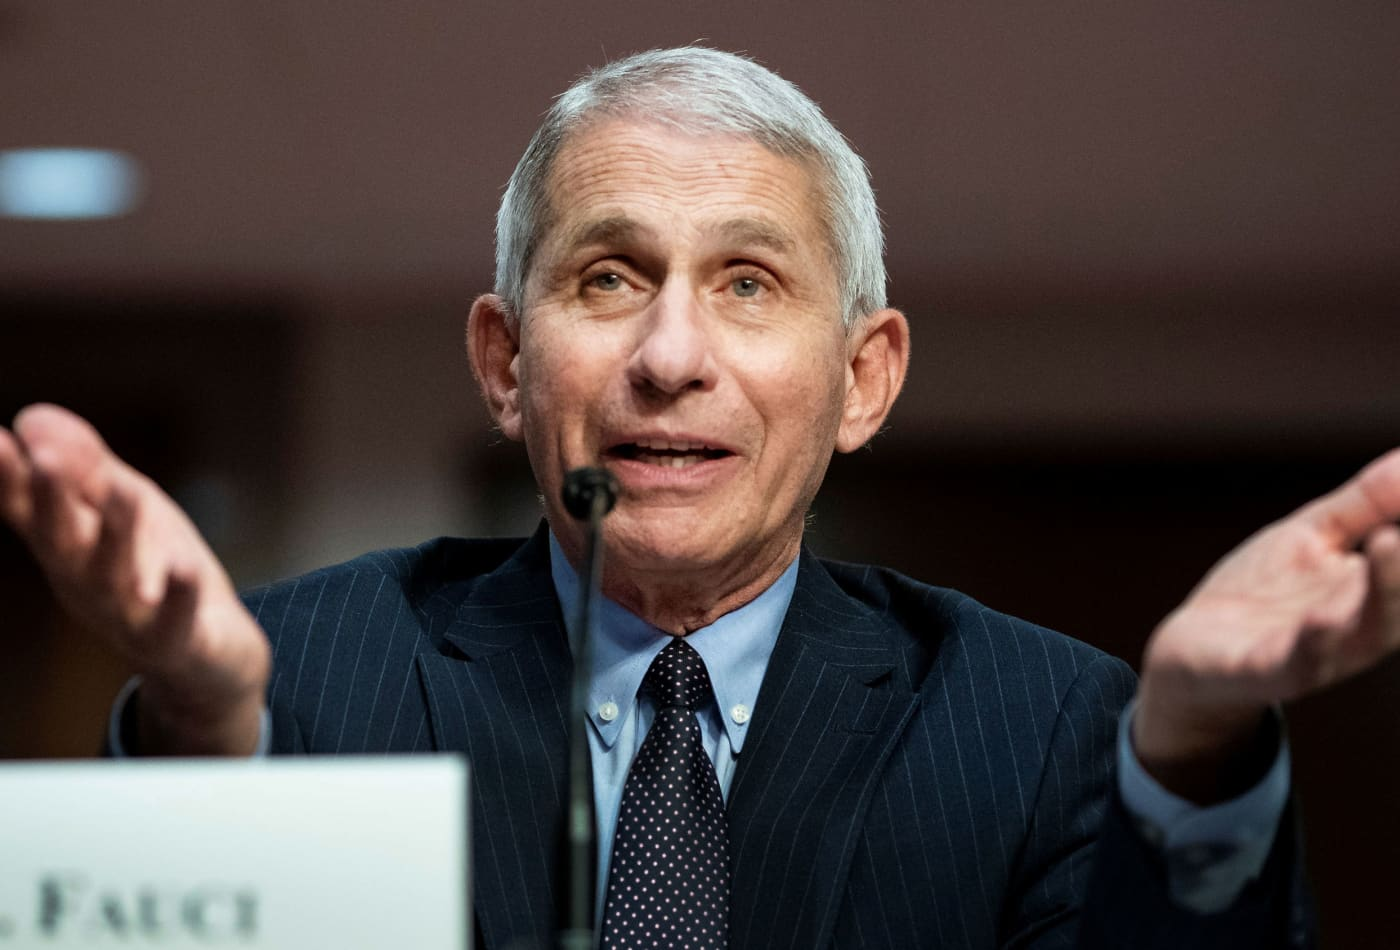 Fauci debunks theories of low CDC coronavirus death toll: 'There are 180,000-plus deaths' in U.S.